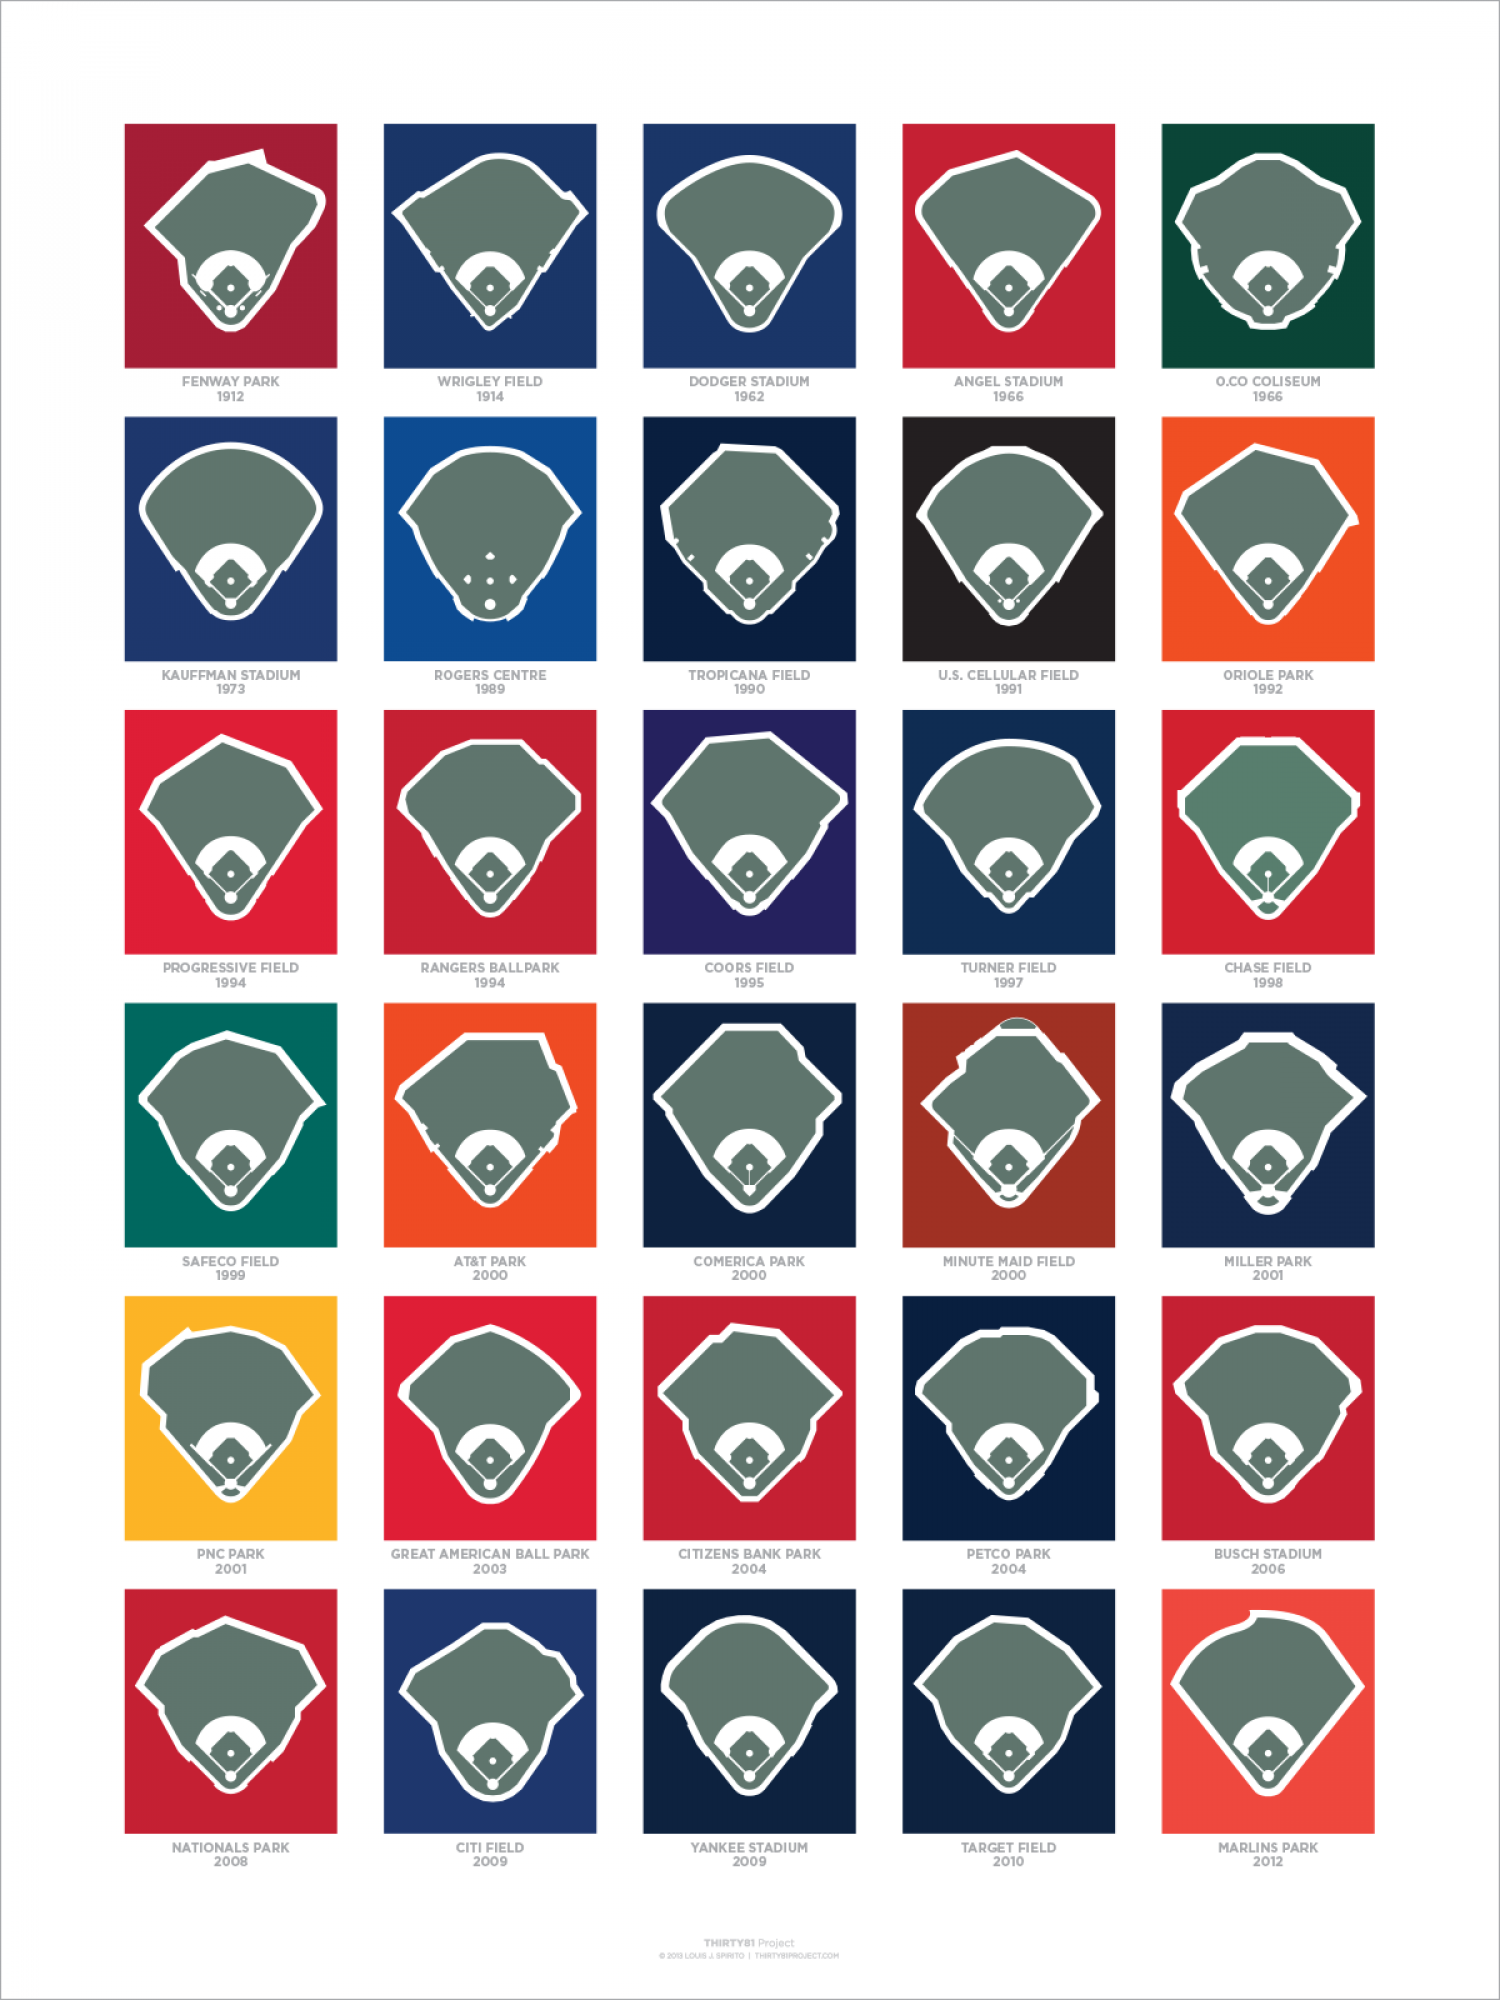 A Century of Ballparks Infographic